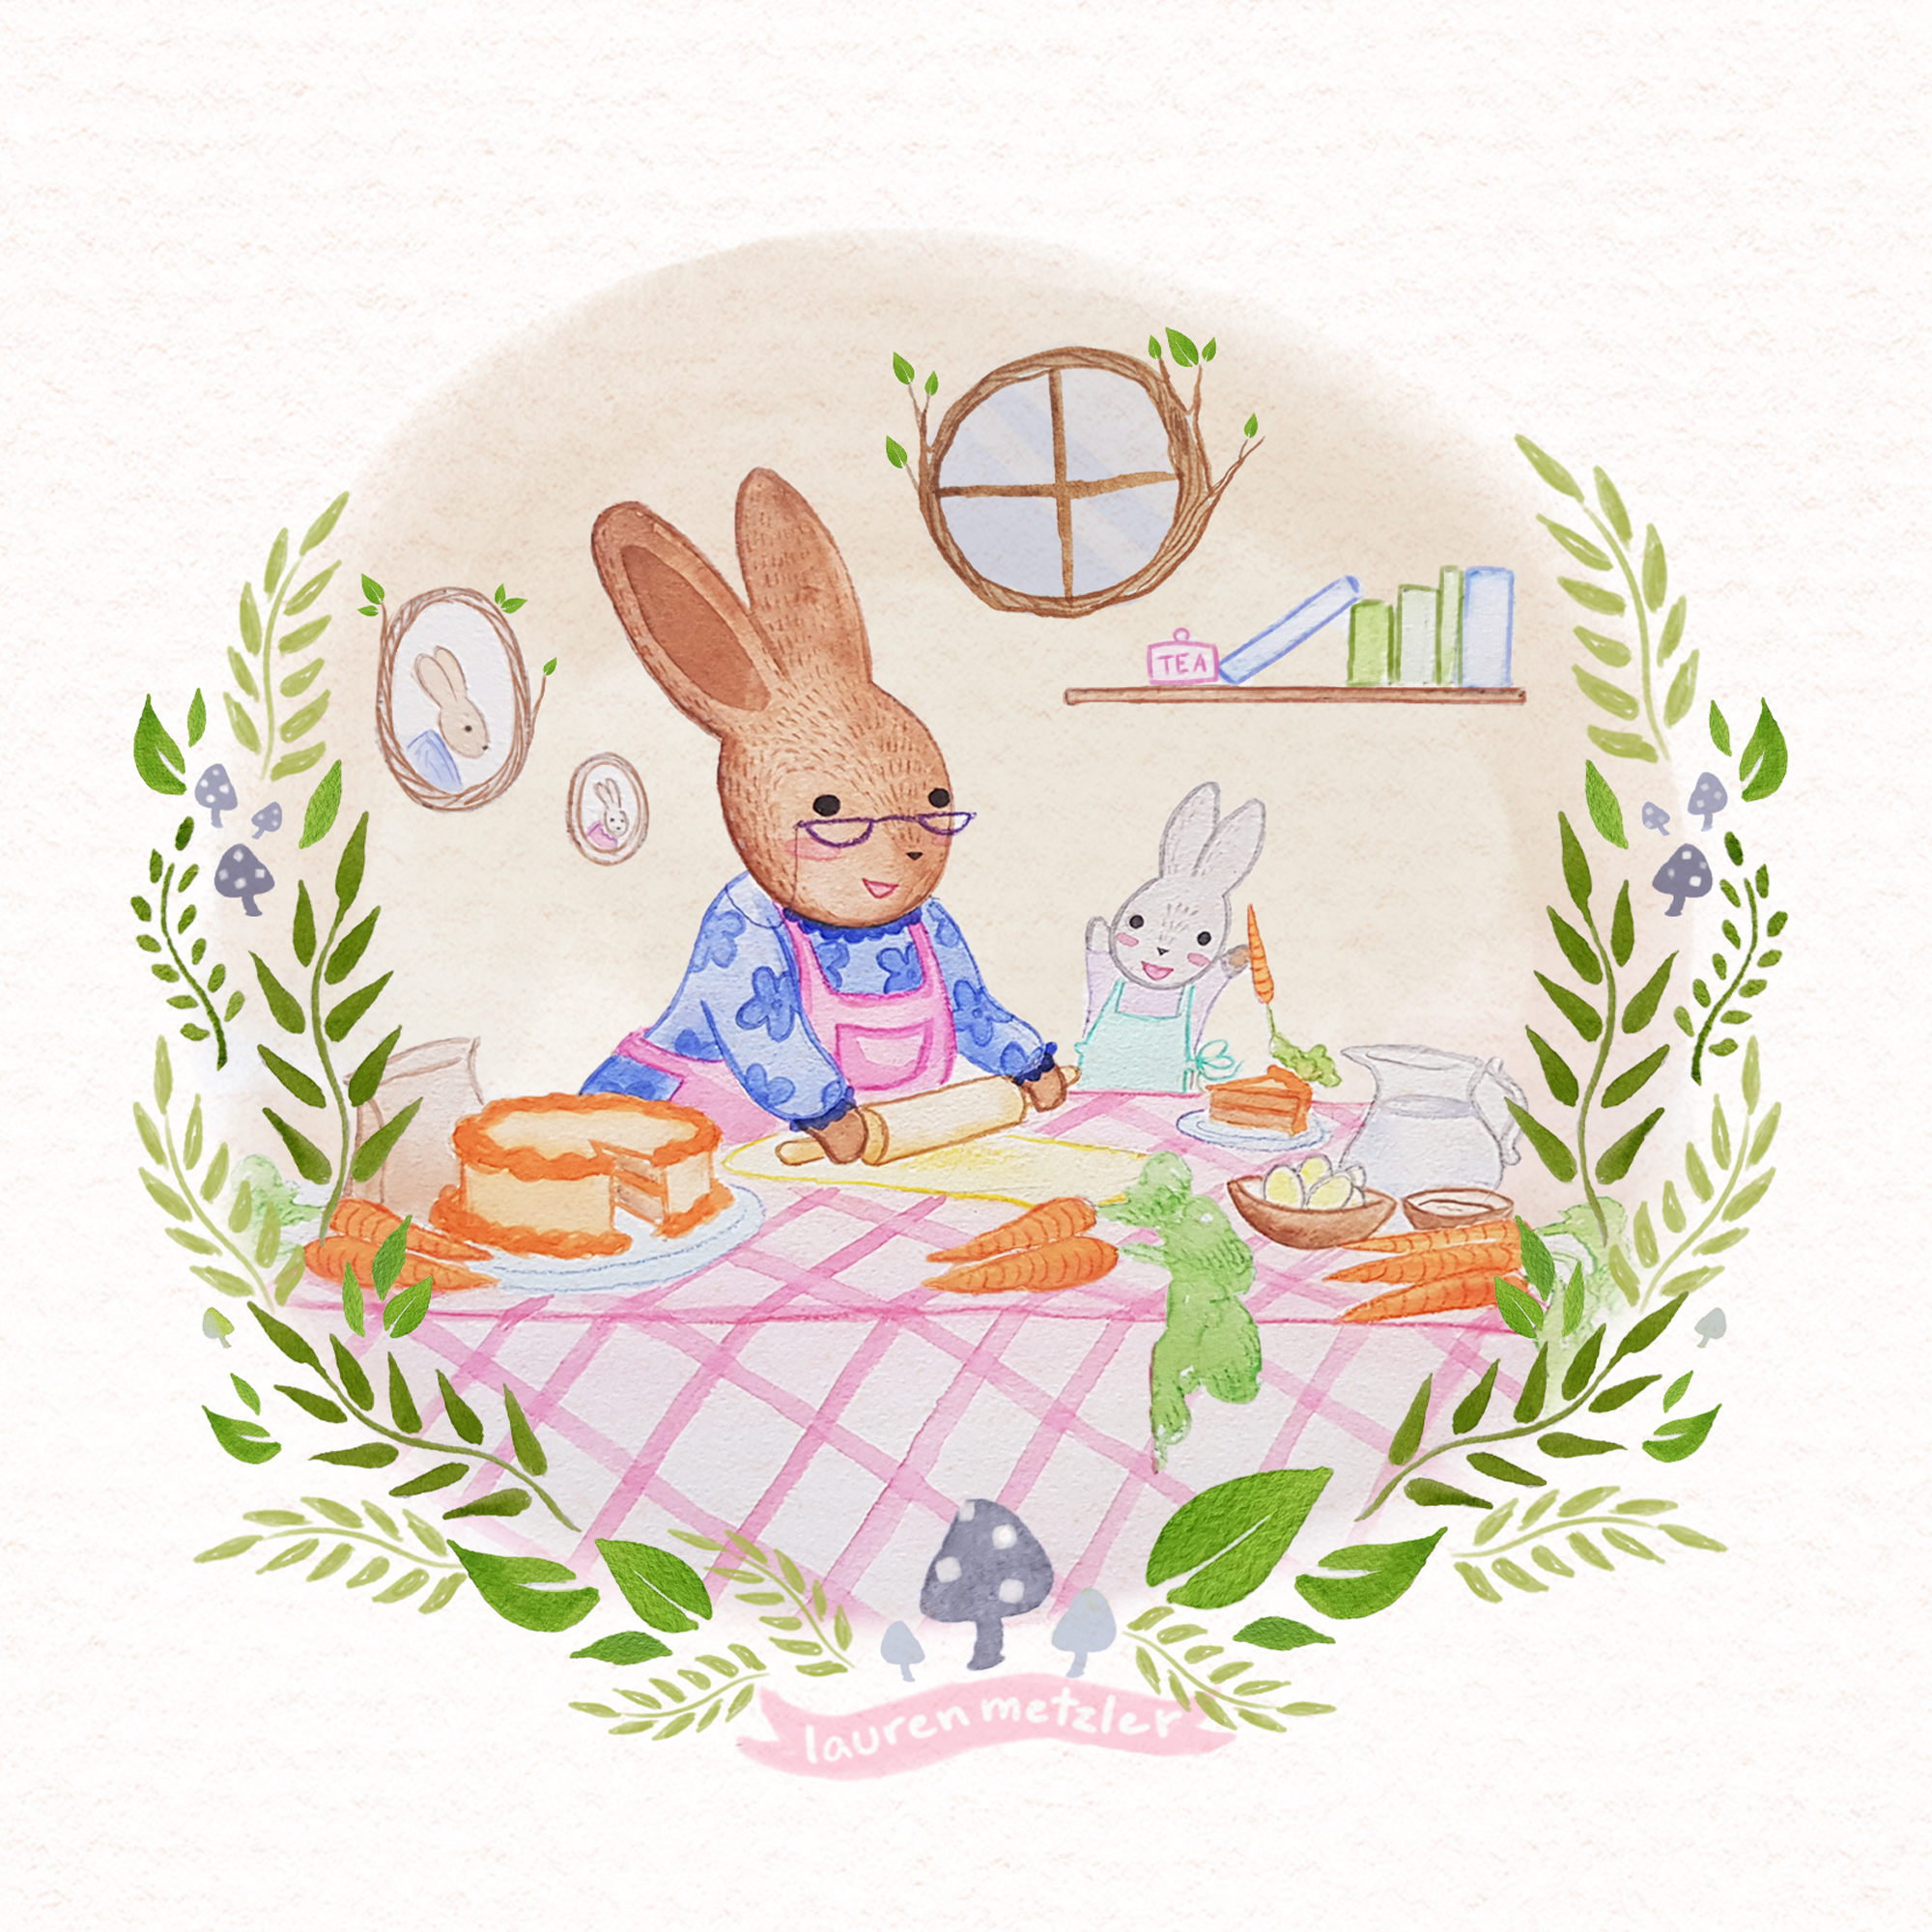 C is for Carrot Cake. Baby Bunny and Grandma Bunny. Watercolour on paper. Children's Book illustration by Lauren Metzler see more at laurenmetzler.com